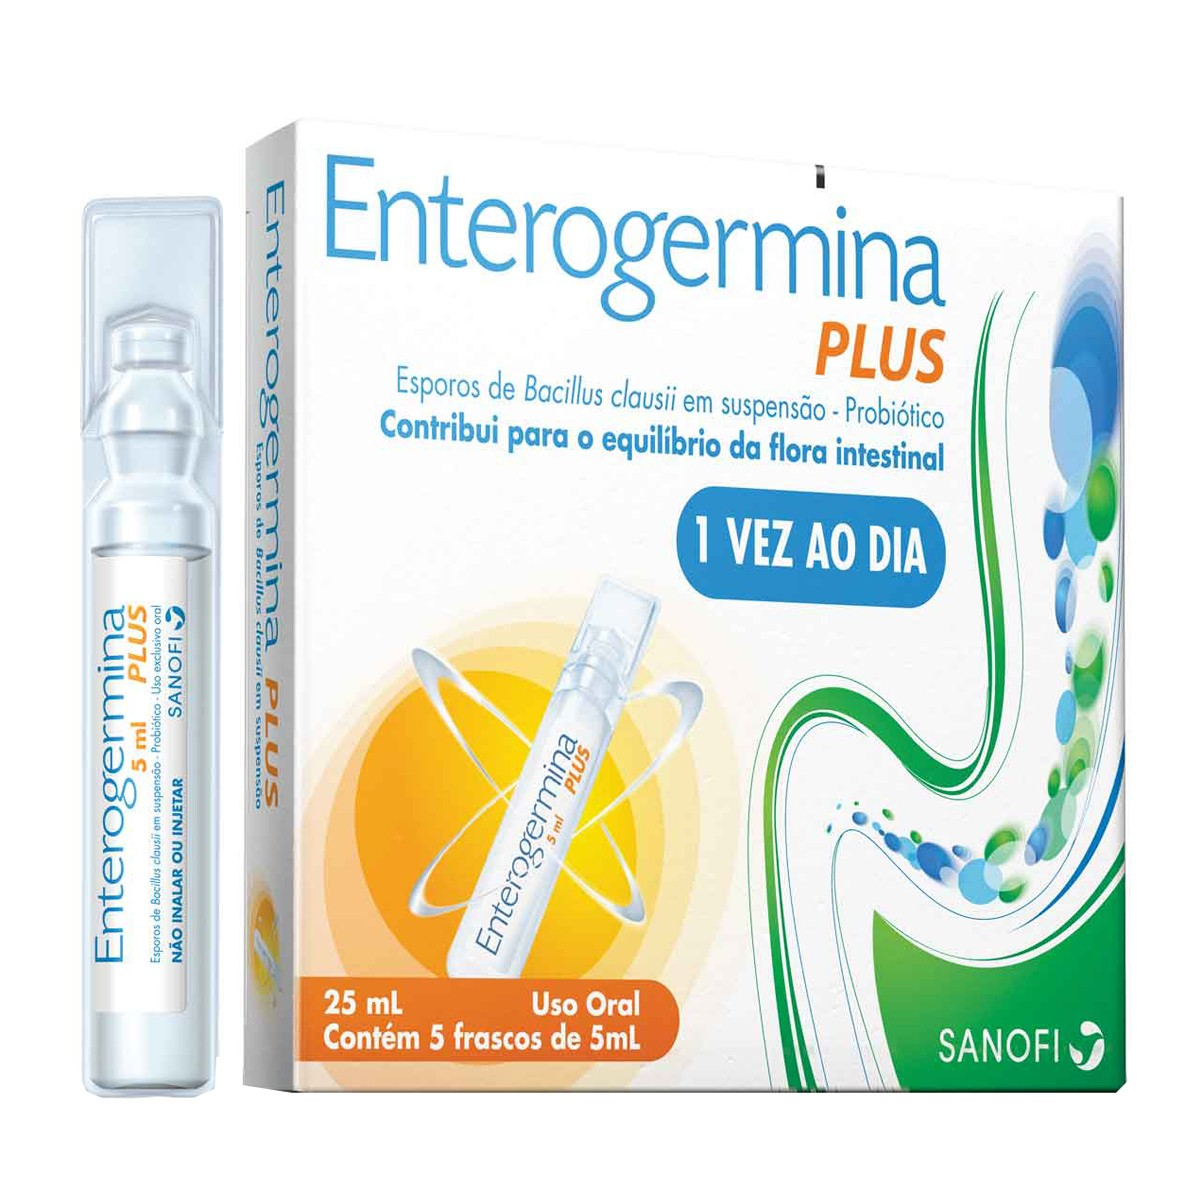 Enterogermina Plus 4 Bcfu/5ml X 5 Frascos